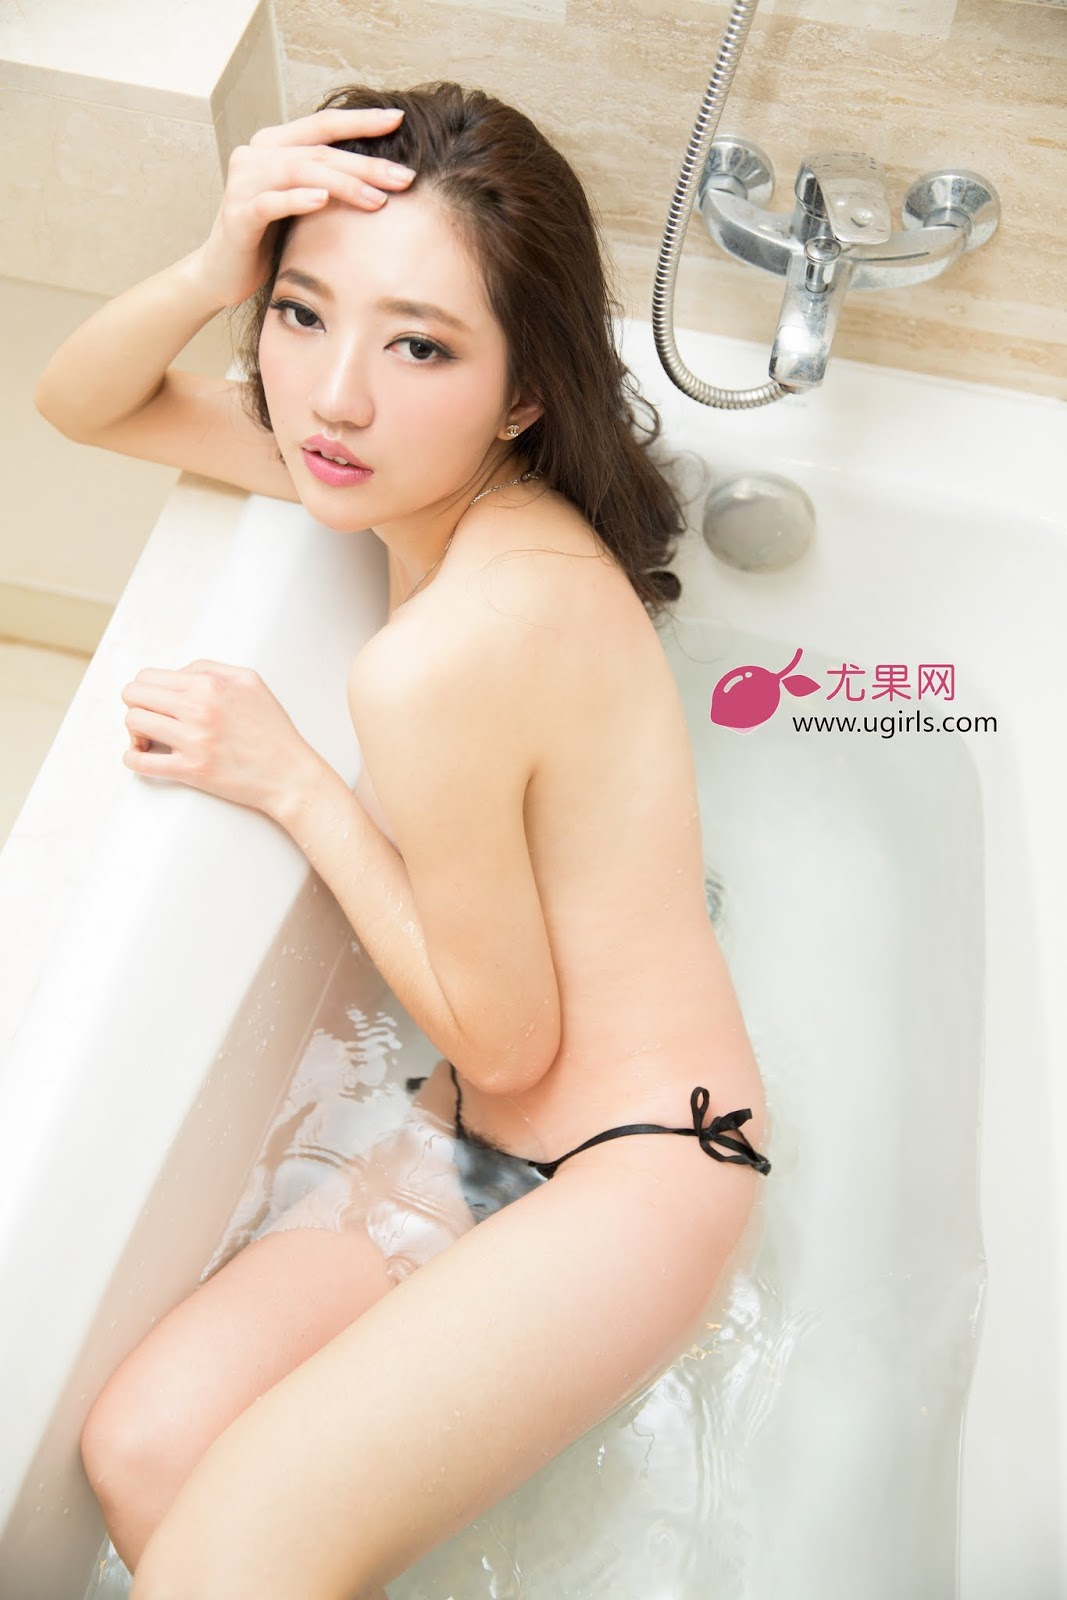 A14A5671 - Hot Model UGIRLS NO.8